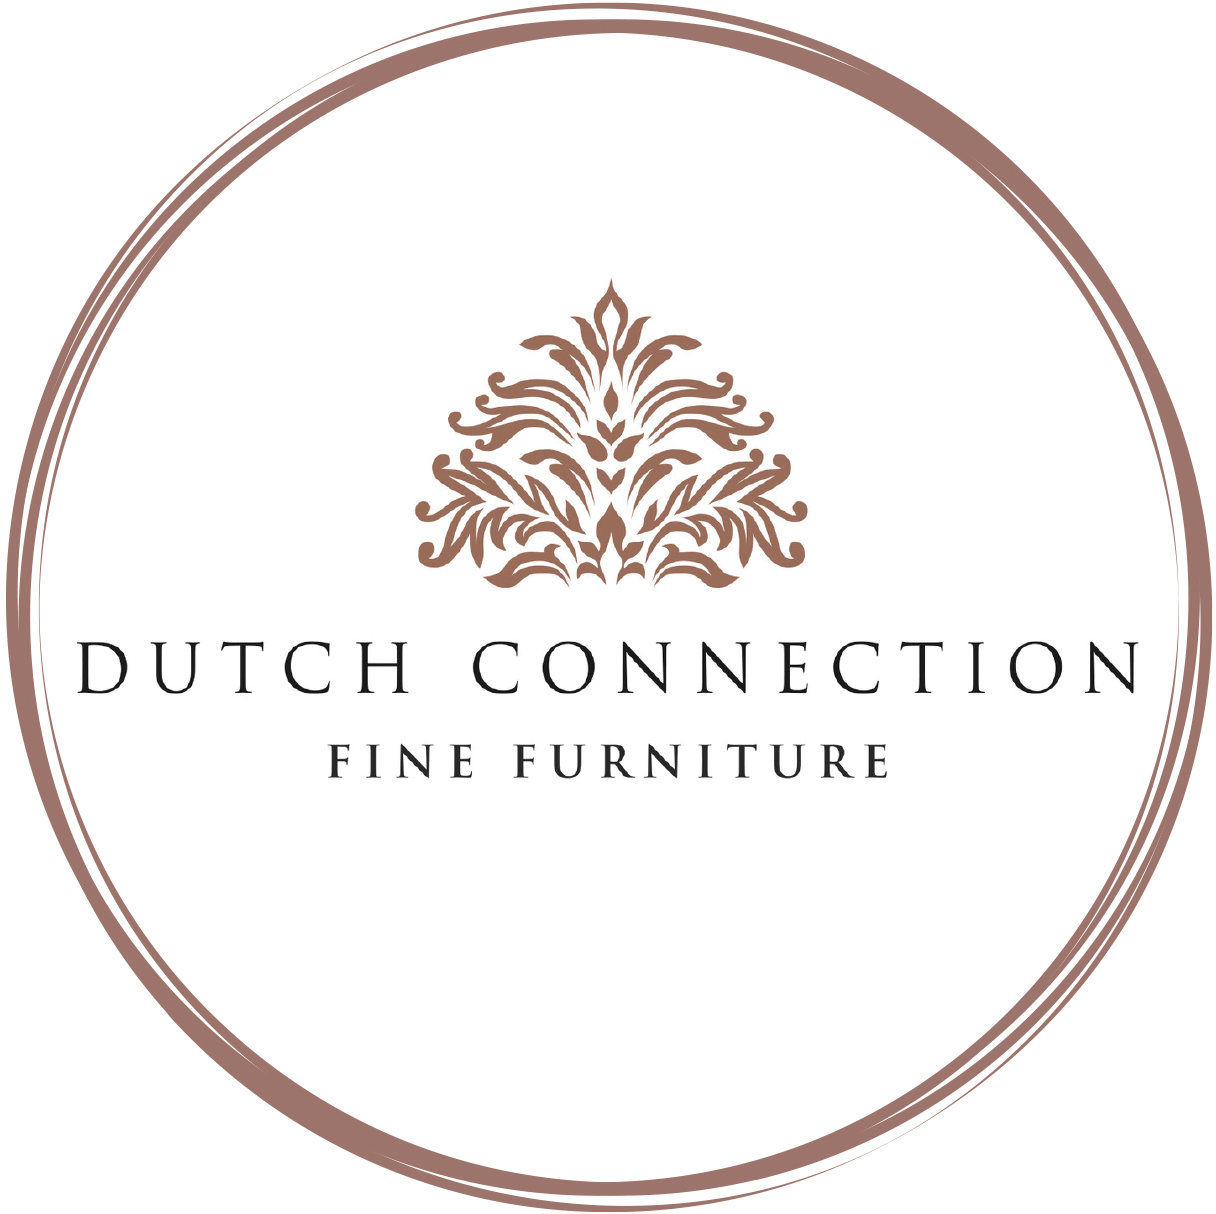 Dutch Connection - Fine Furniture